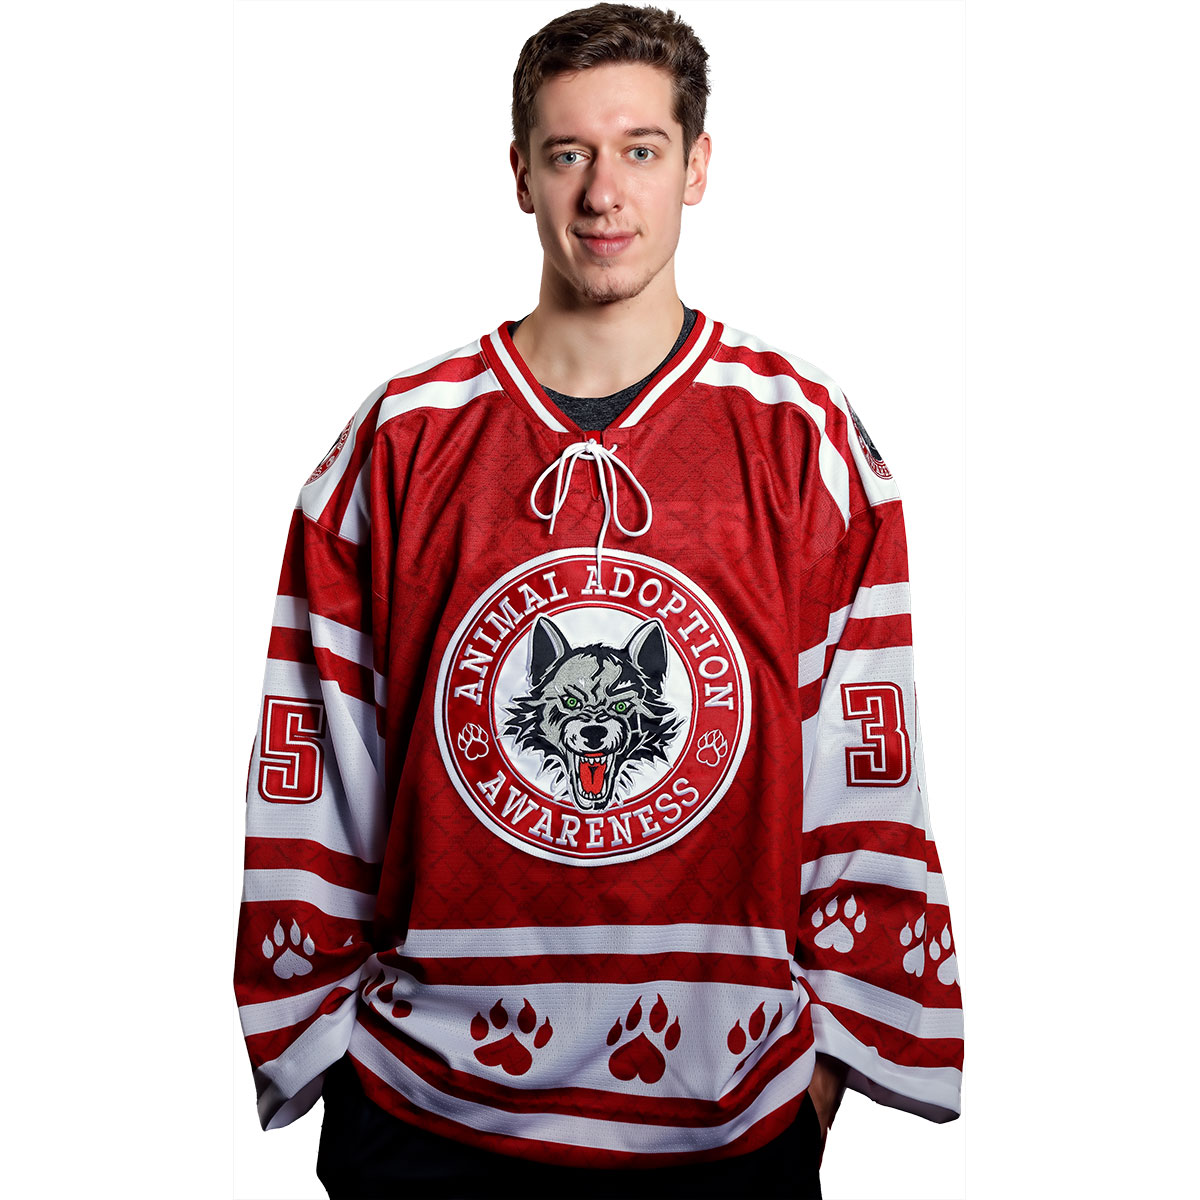 #35 Jordan Binnington Animal Adoption Awareness Jersey